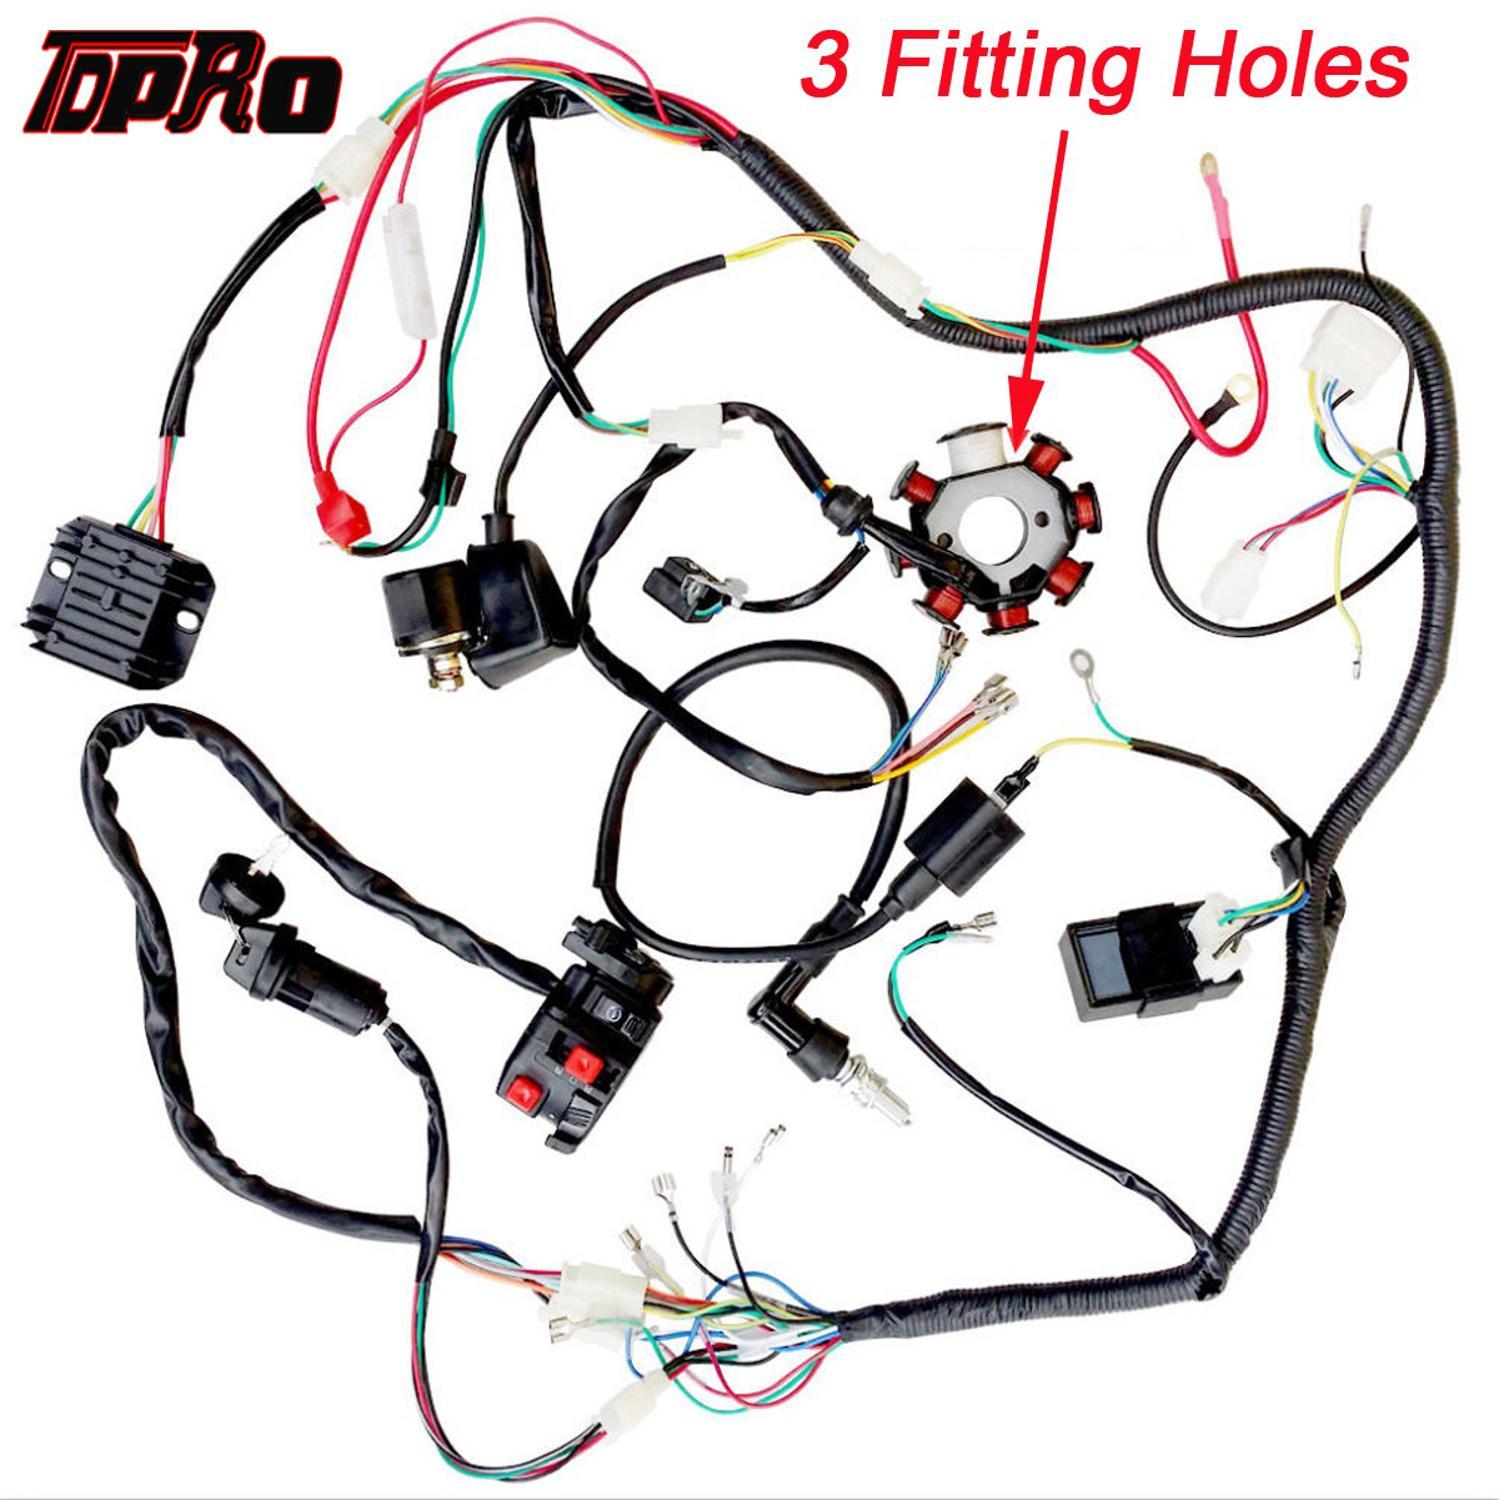 [XOTG_4463]  TDPRO Motorcycle Full Complete Electrics Wiring Harness Loom Ignition Coil  CDI Switch For Scooter Moped 125cc~250cc Pitbike Go K| | - AliExpress | Ignition Wiring Harness |  | AliExpress